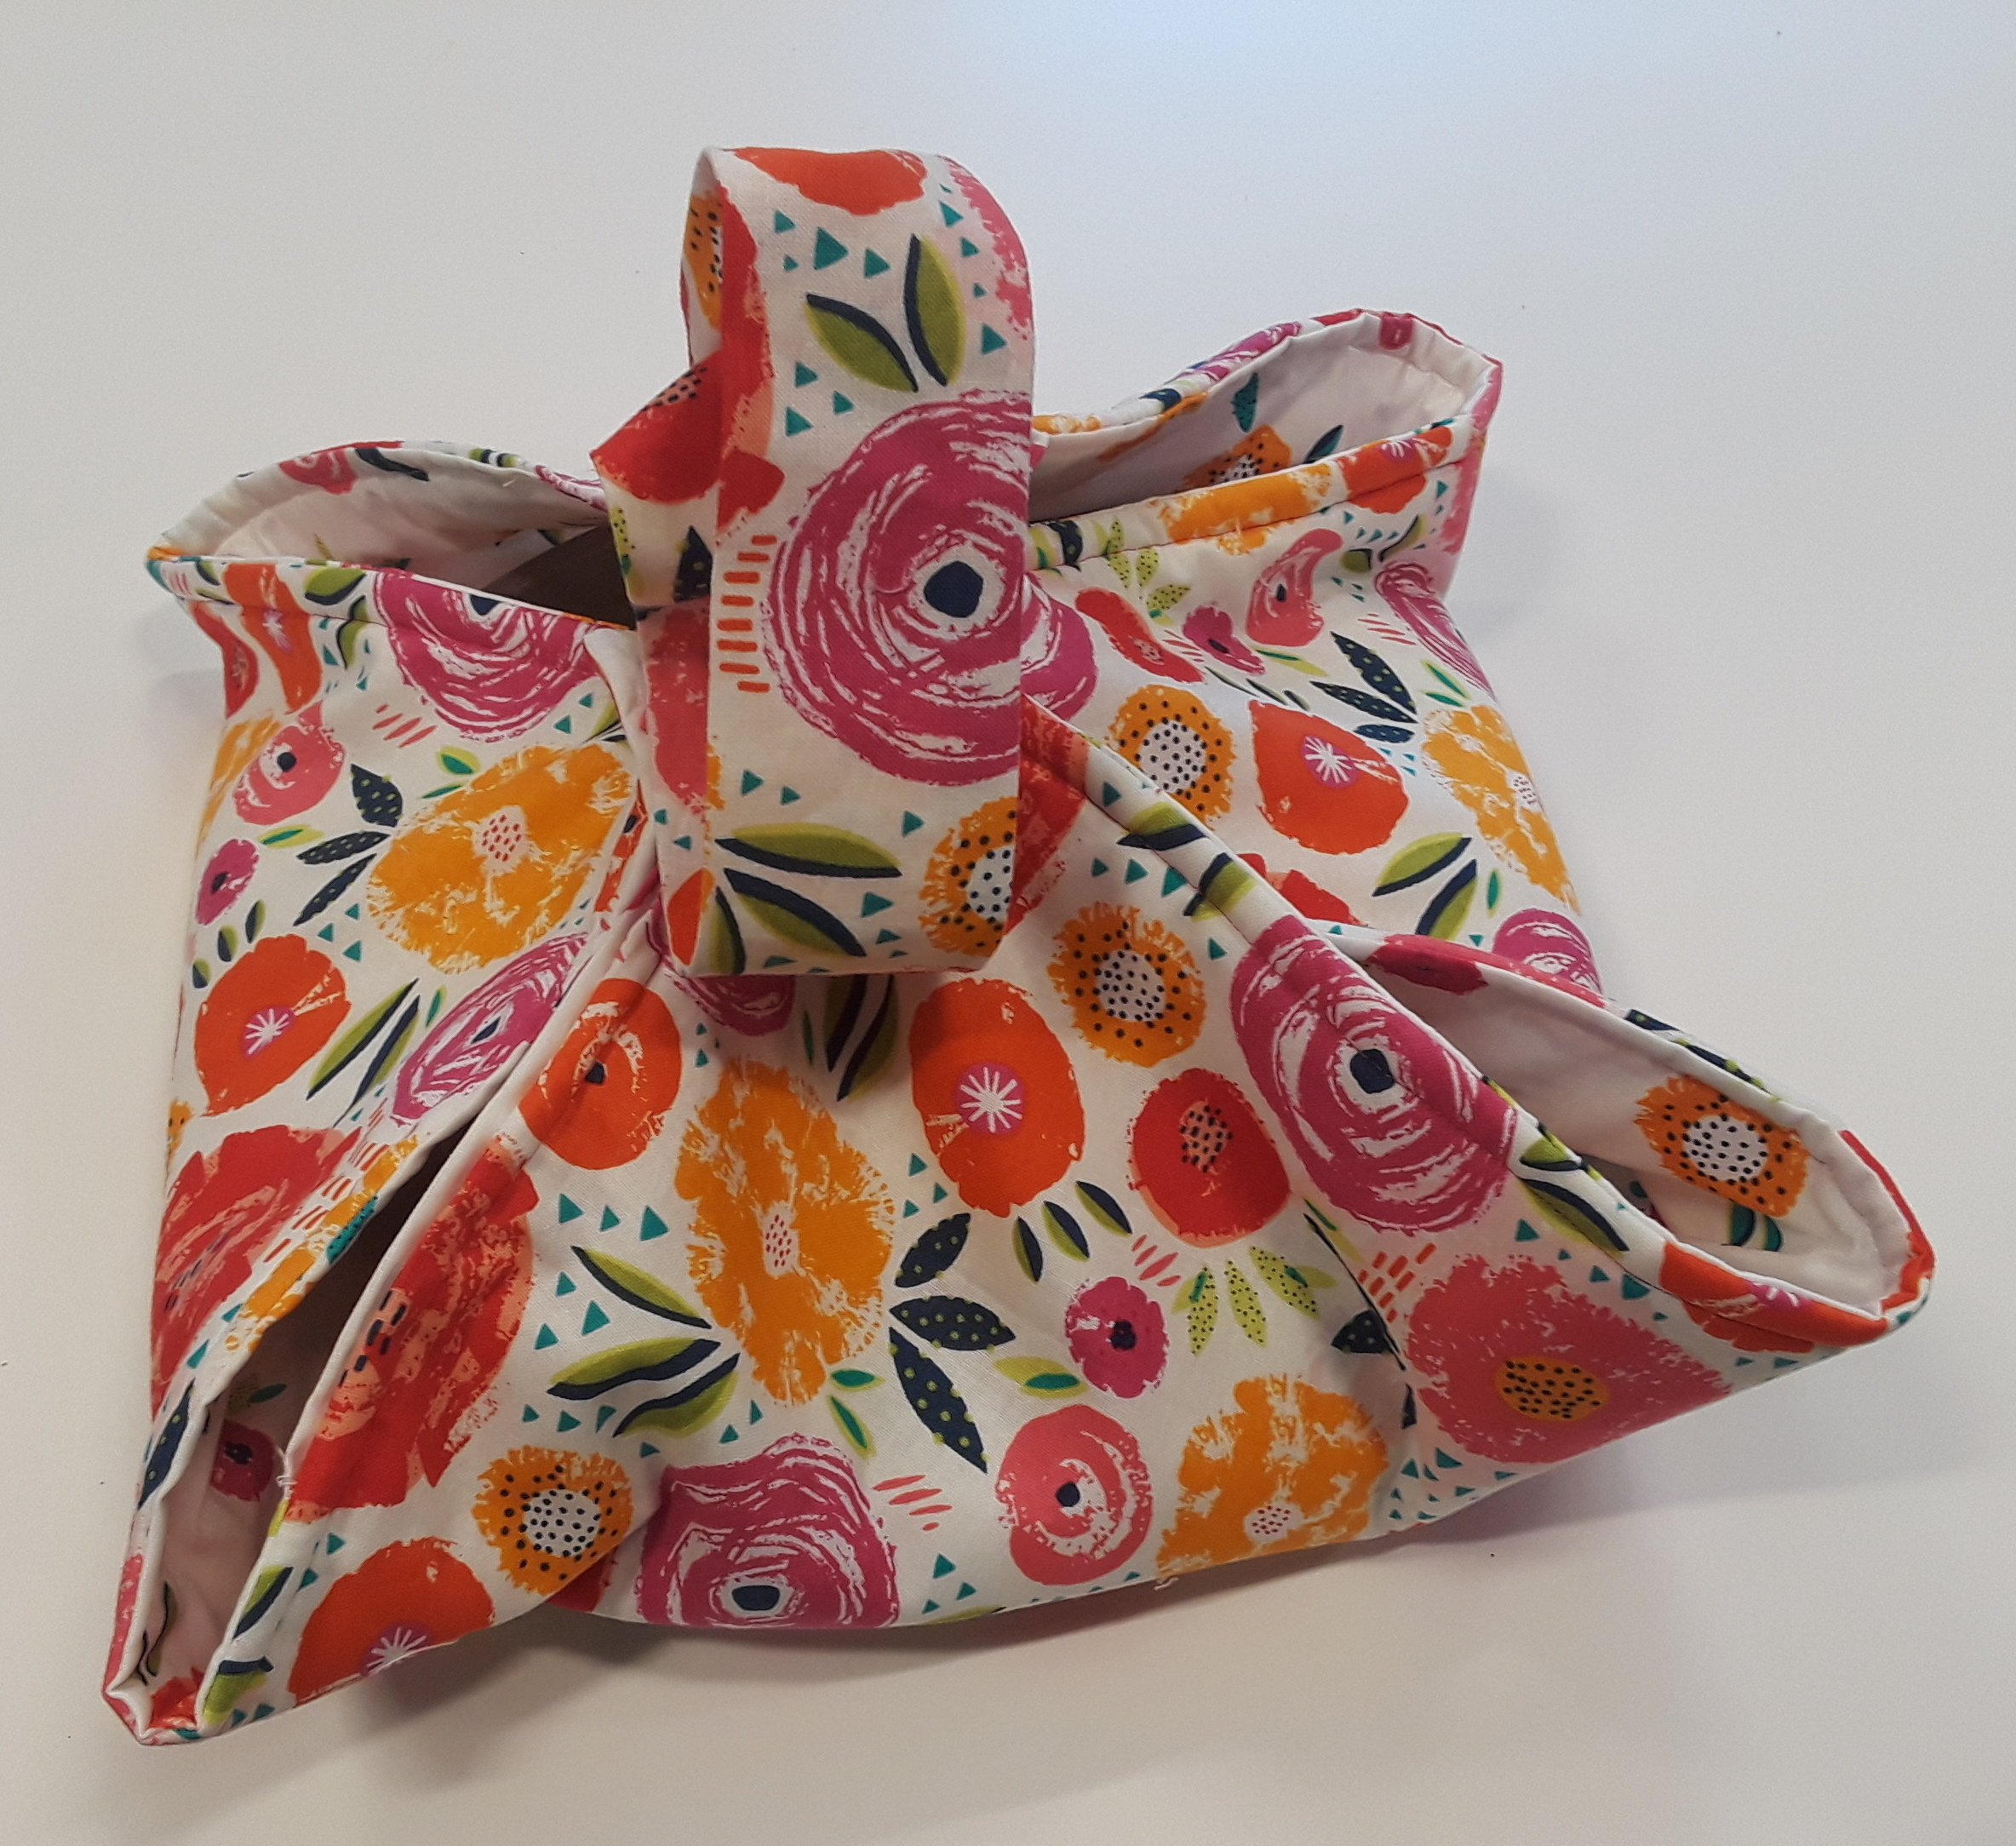 CLASS FULL-Sewing Basics-Casserole Carrier